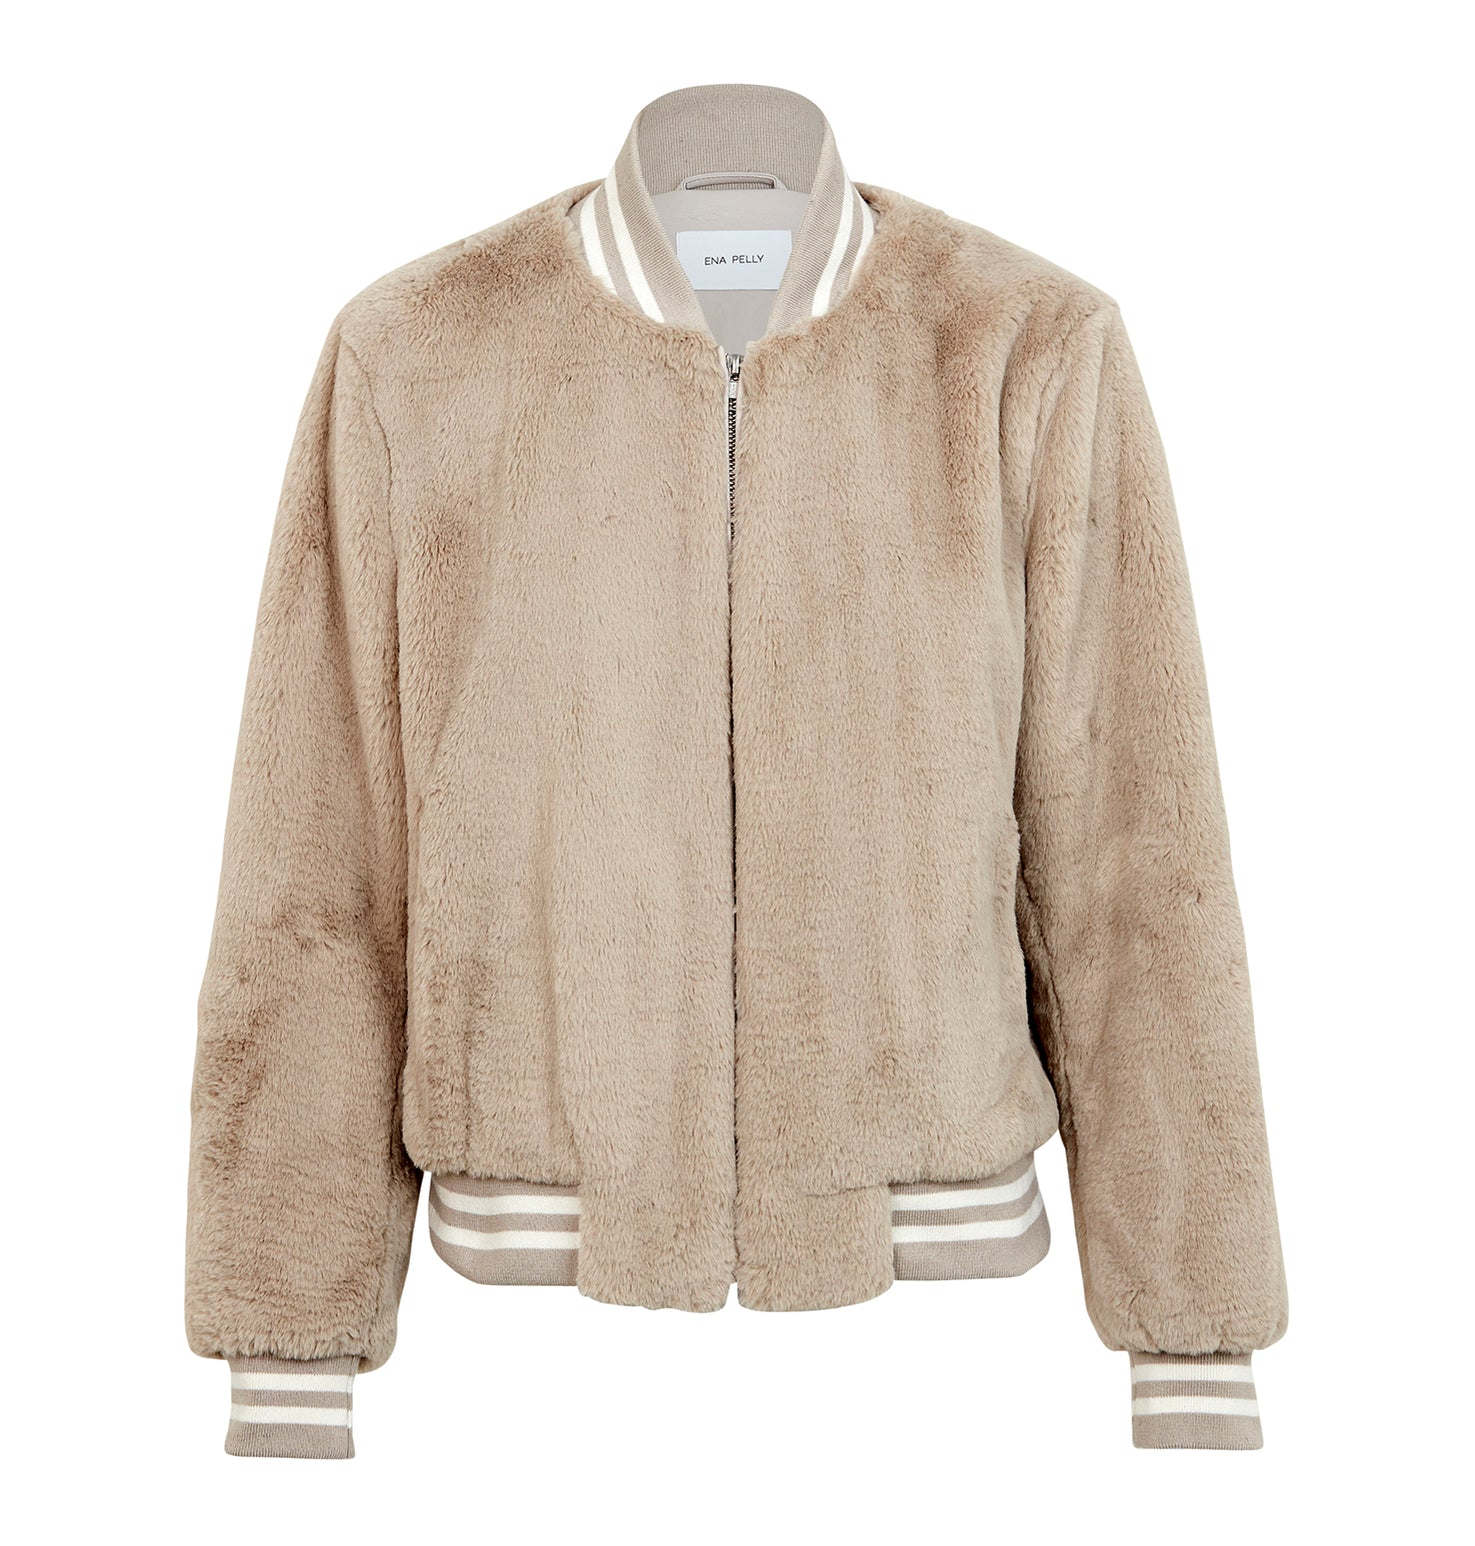 Essential Faux Fur Bomber Jacket - Oatmeal